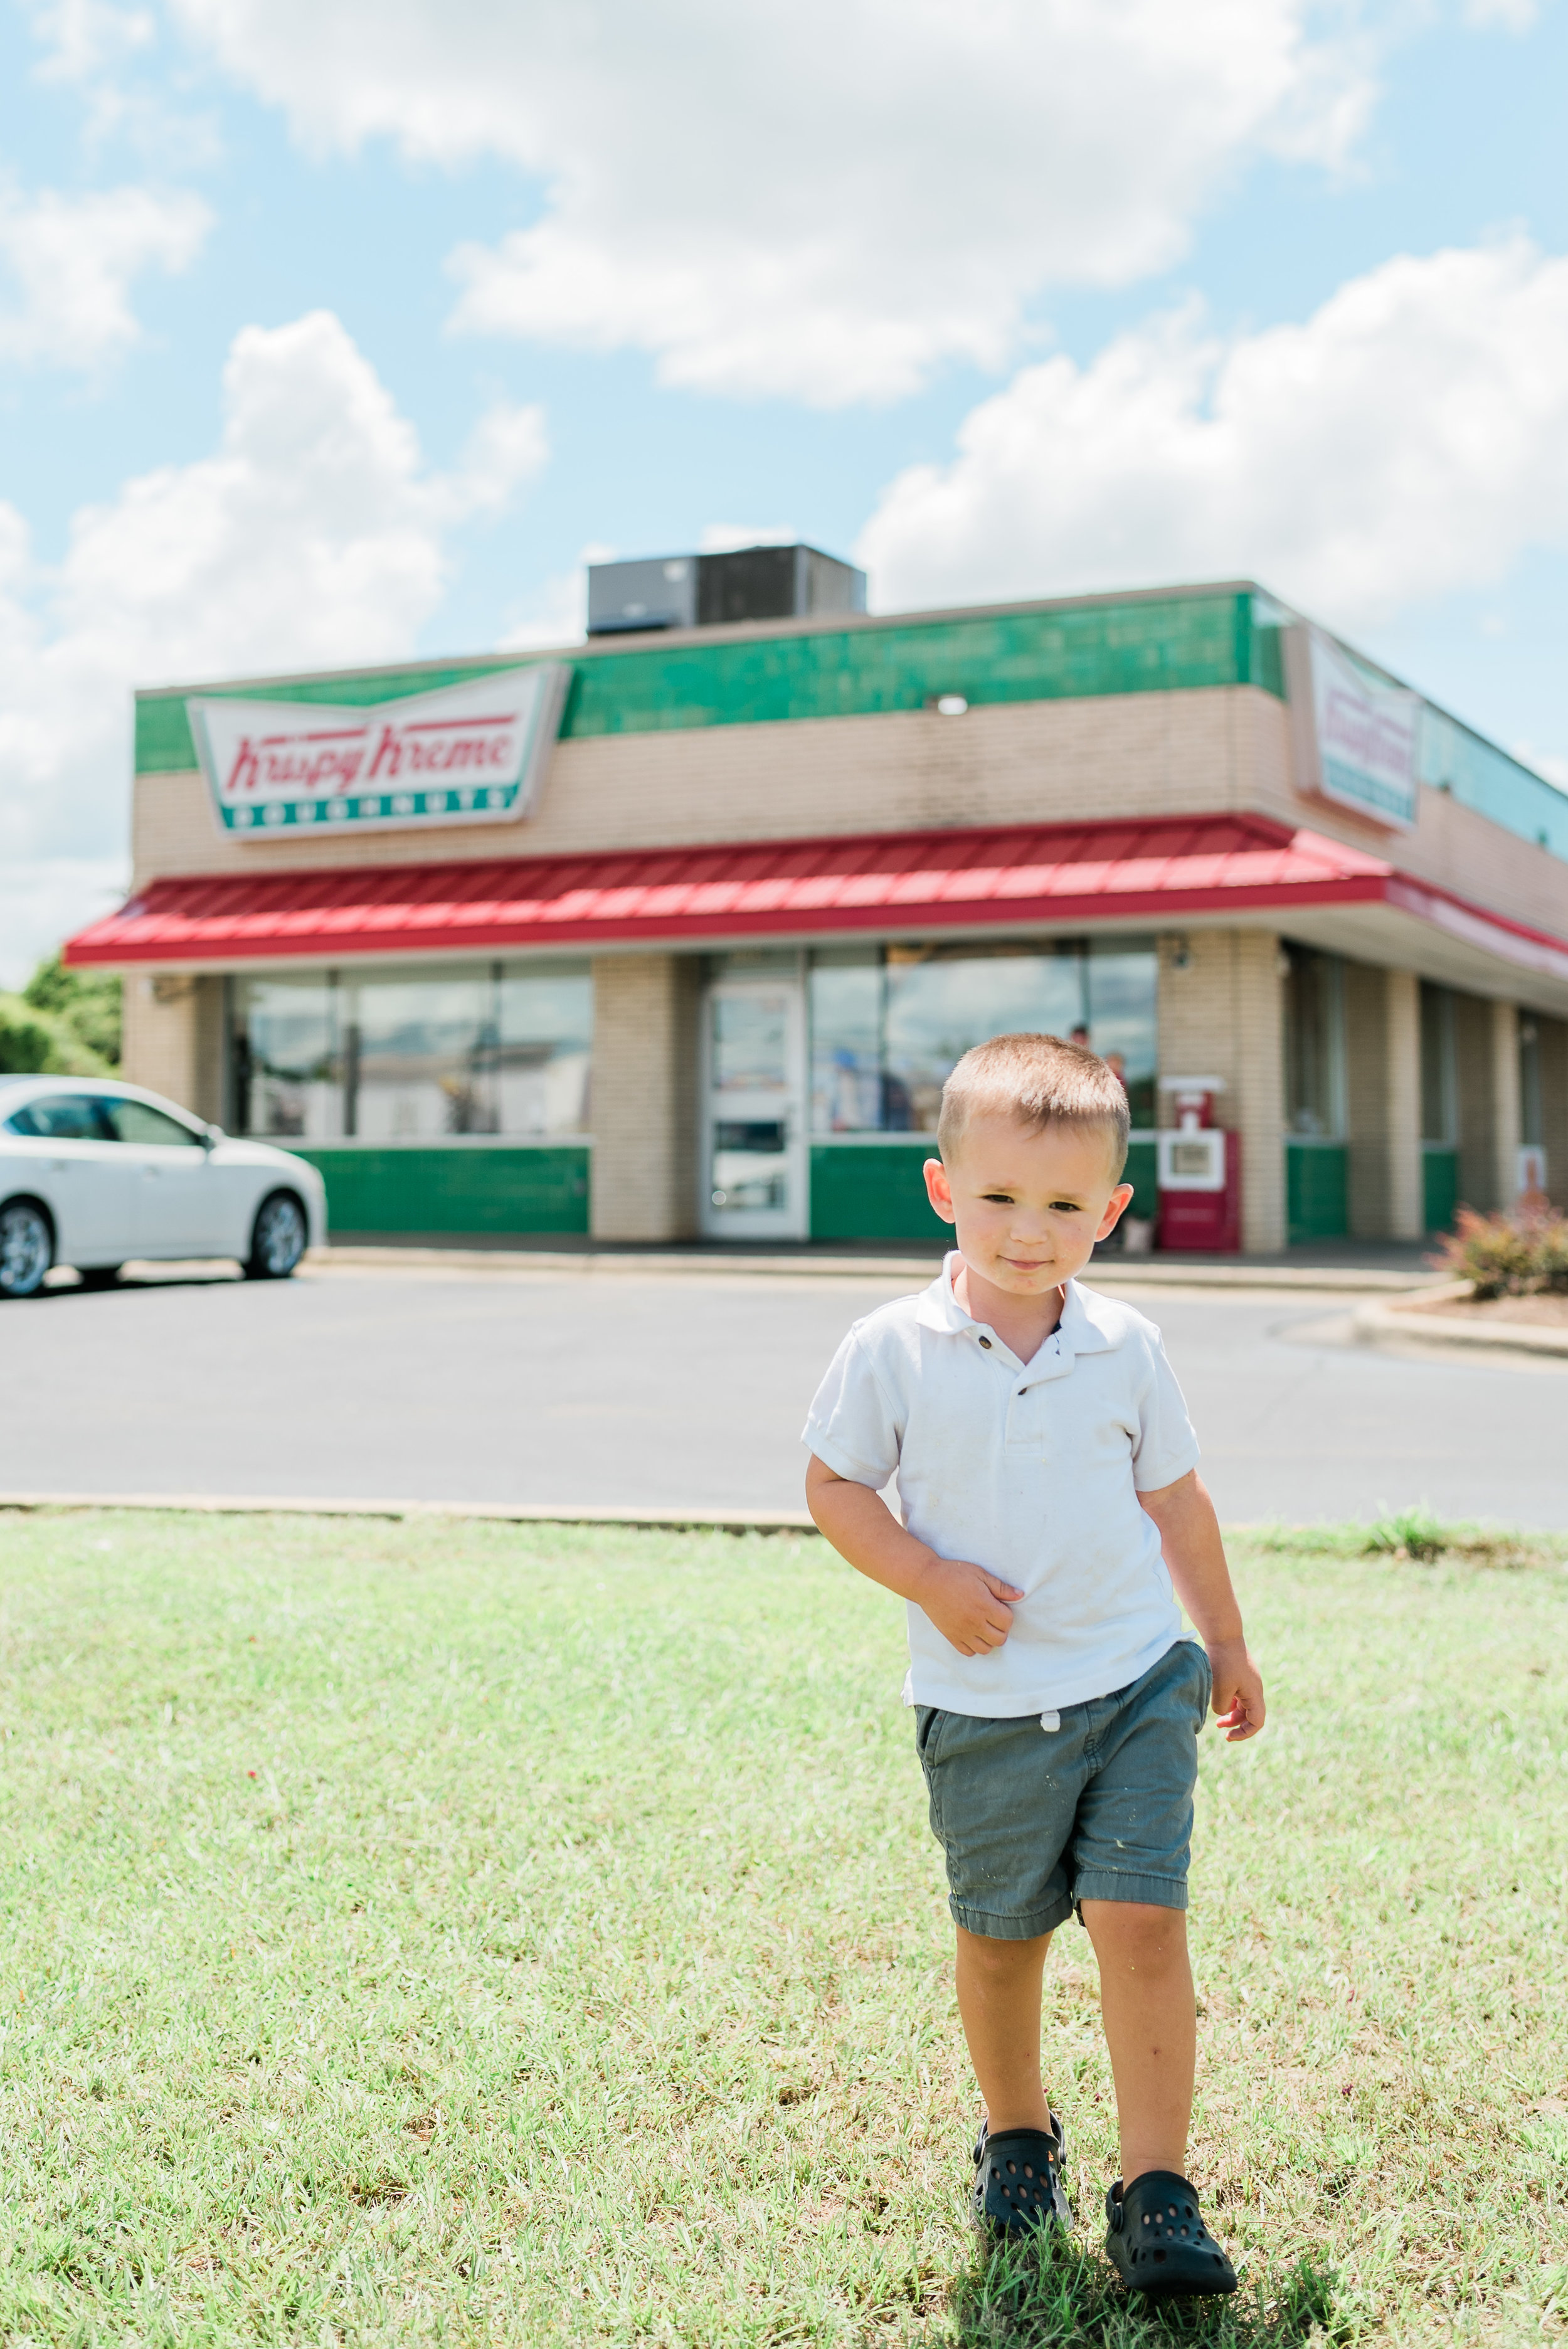 Krispy Kreme Birthday Doughnuts - Happy 3rd Birthday to my favorite little guy! This year we celebrated with one of his favorite things... DOUGHNUTS!